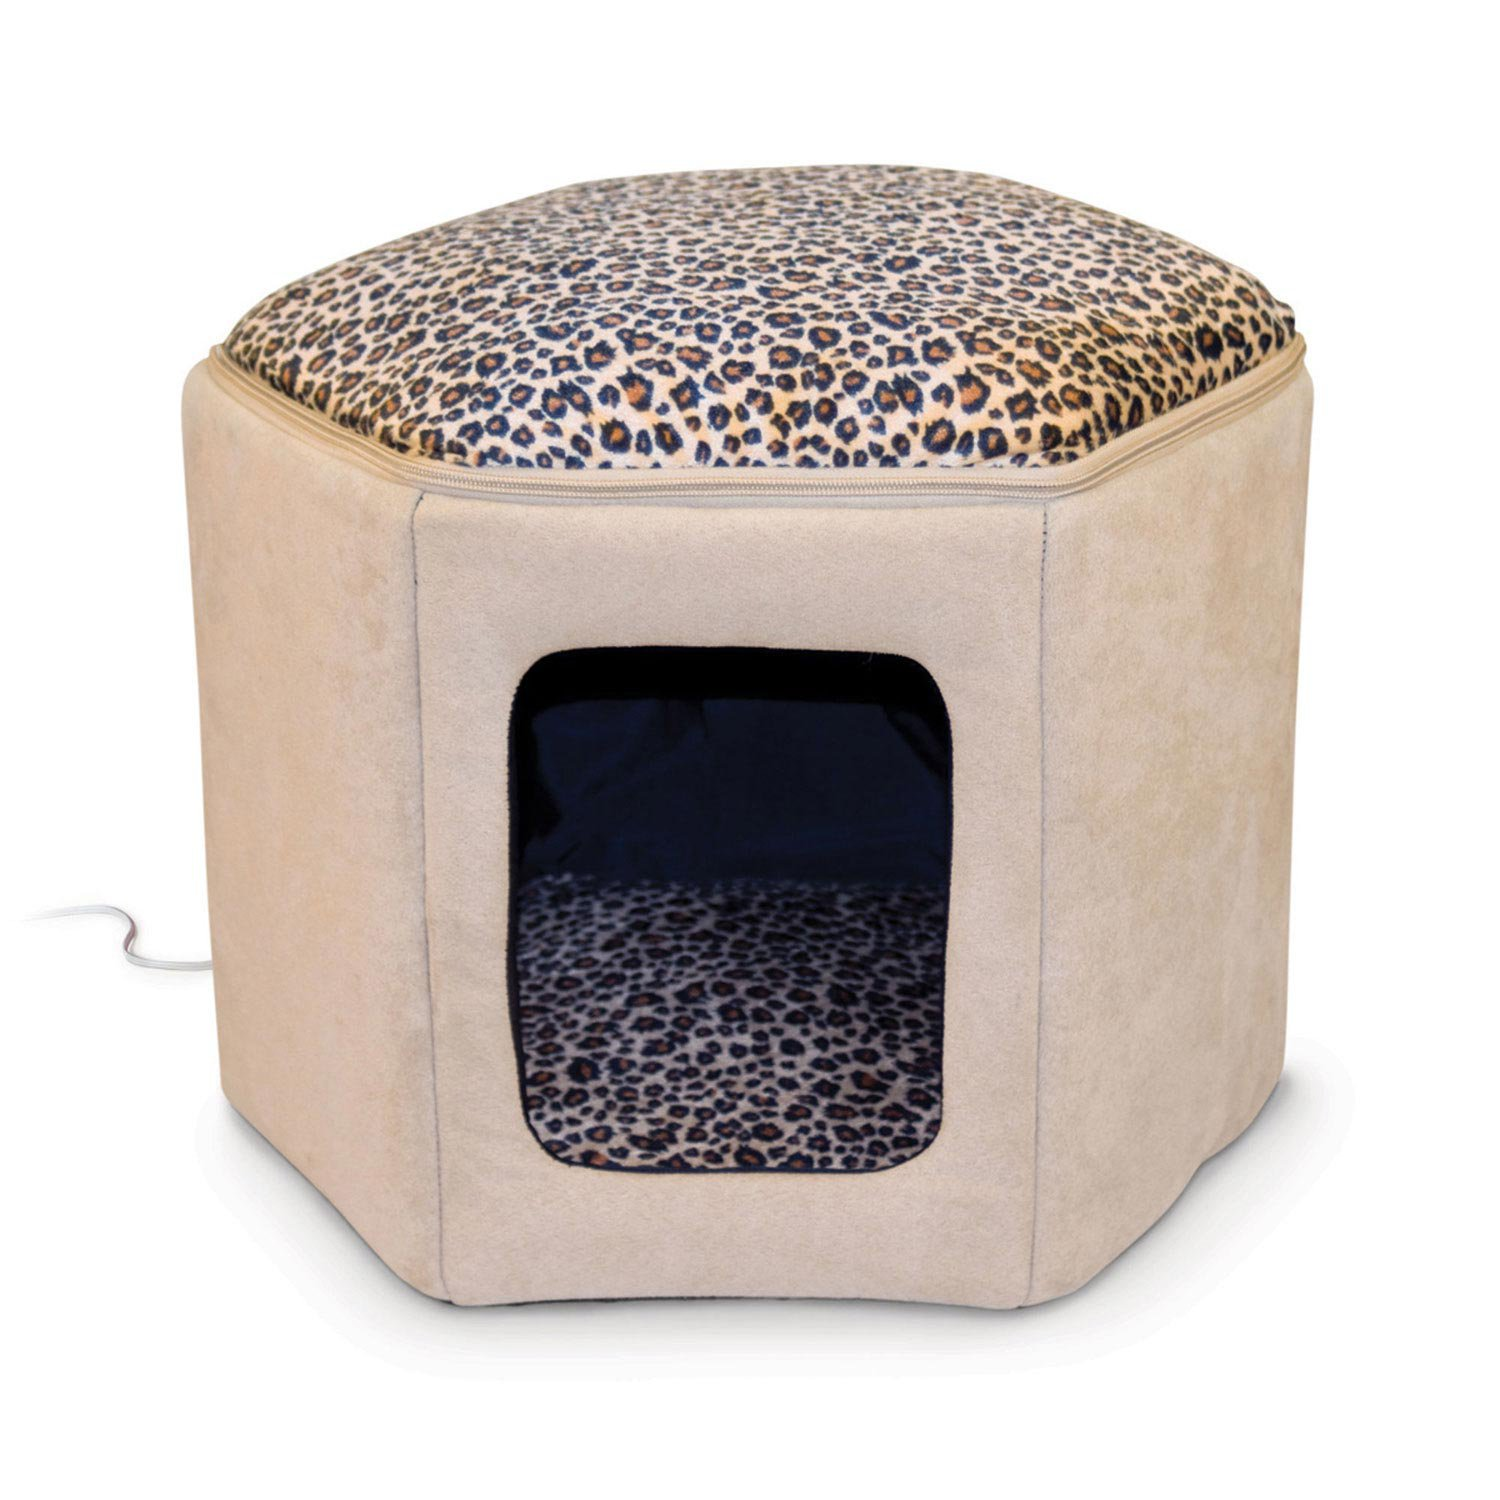 k h thermo kitty sleep house heated cat bed in tan and. Black Bedroom Furniture Sets. Home Design Ideas